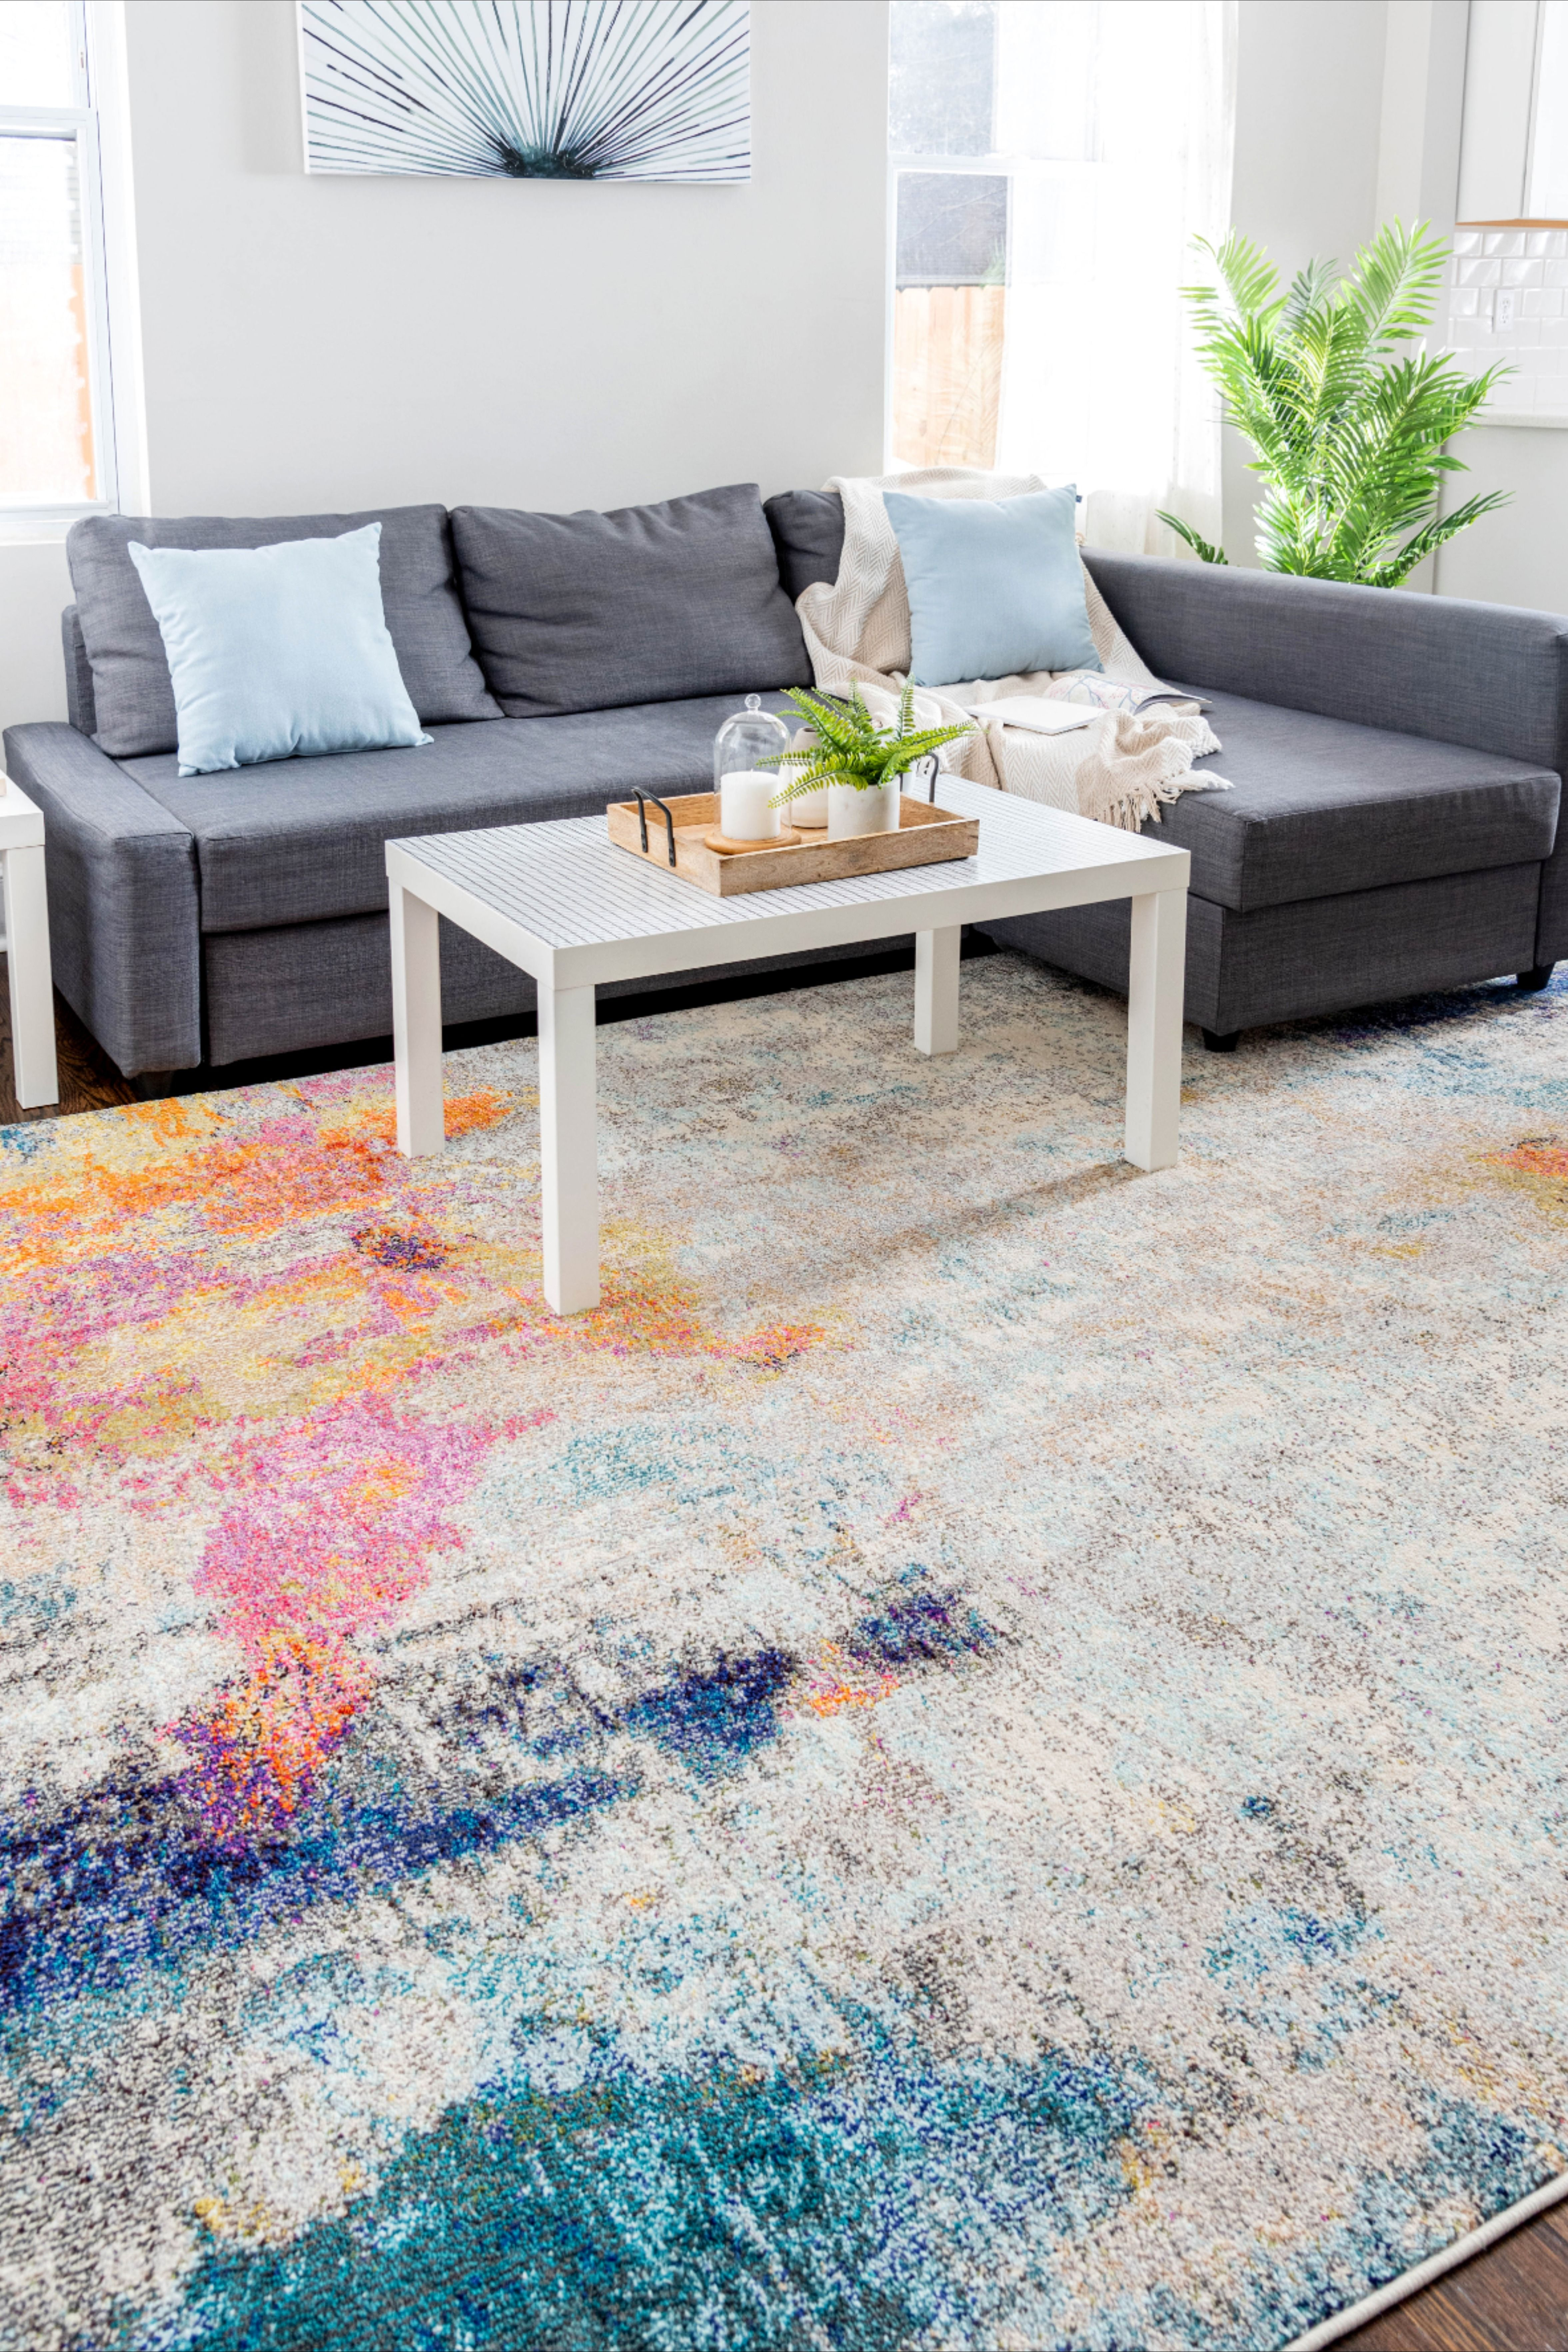 Shop Our Spectrum Collection To Discover Stunning Contemporary